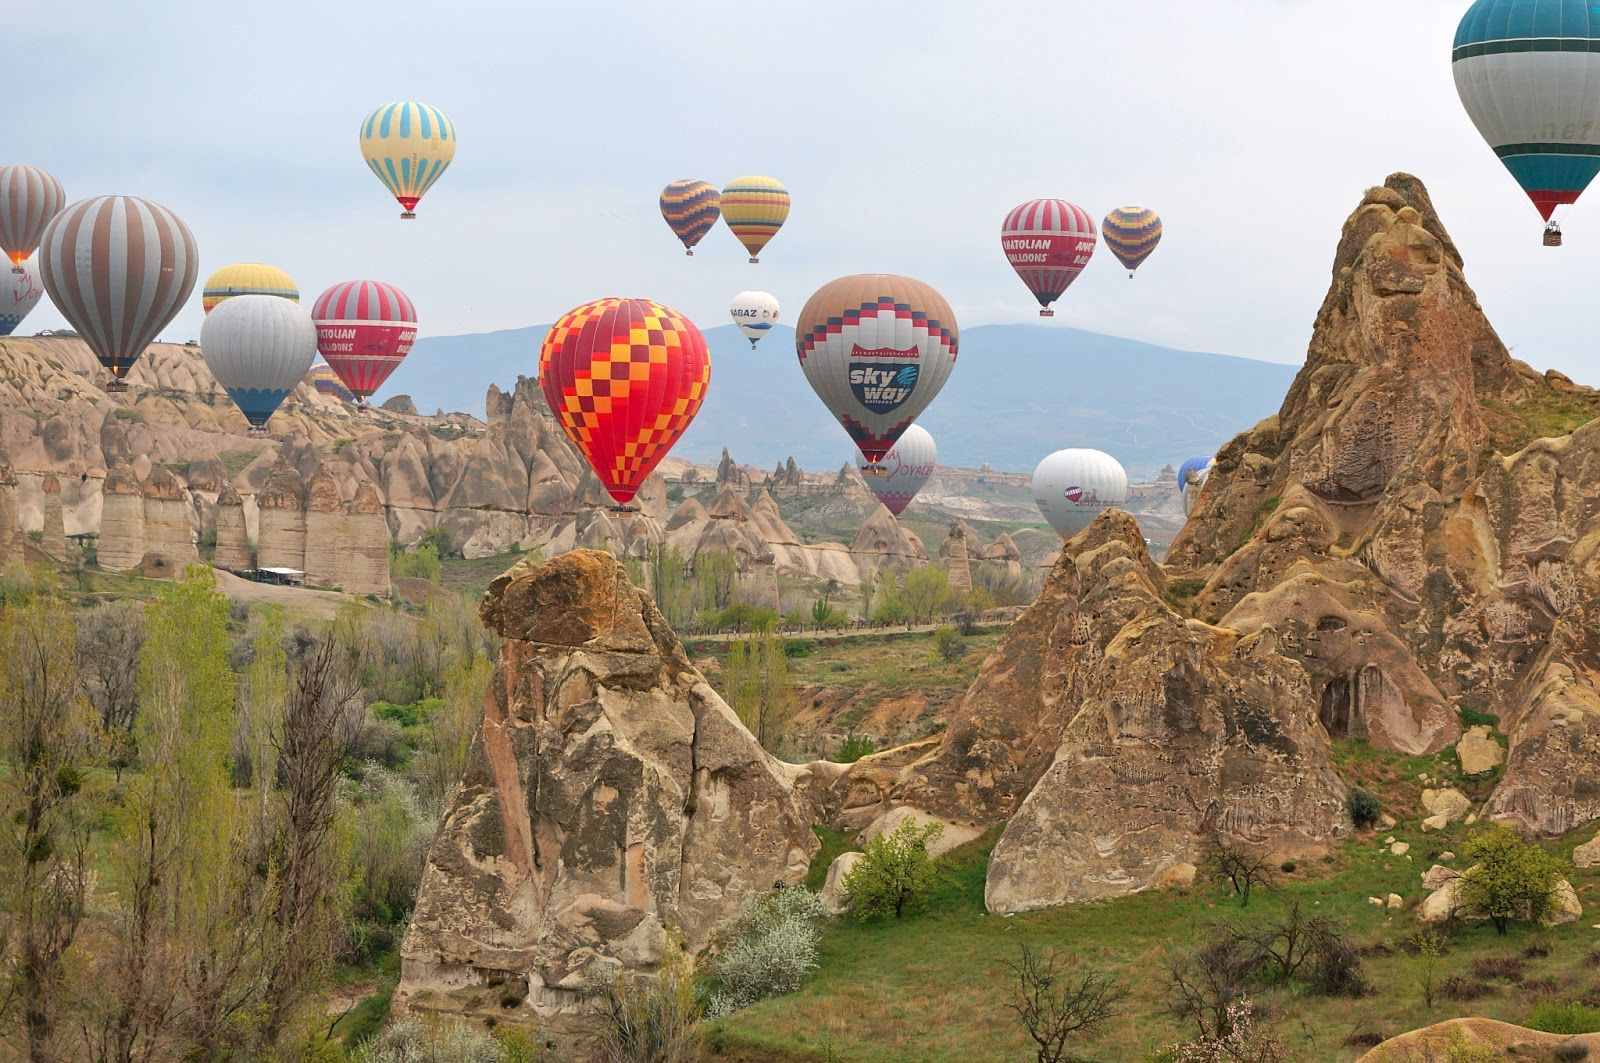 Cappadocia Hot Air Balloon Cave Hotel and Cyprus Island